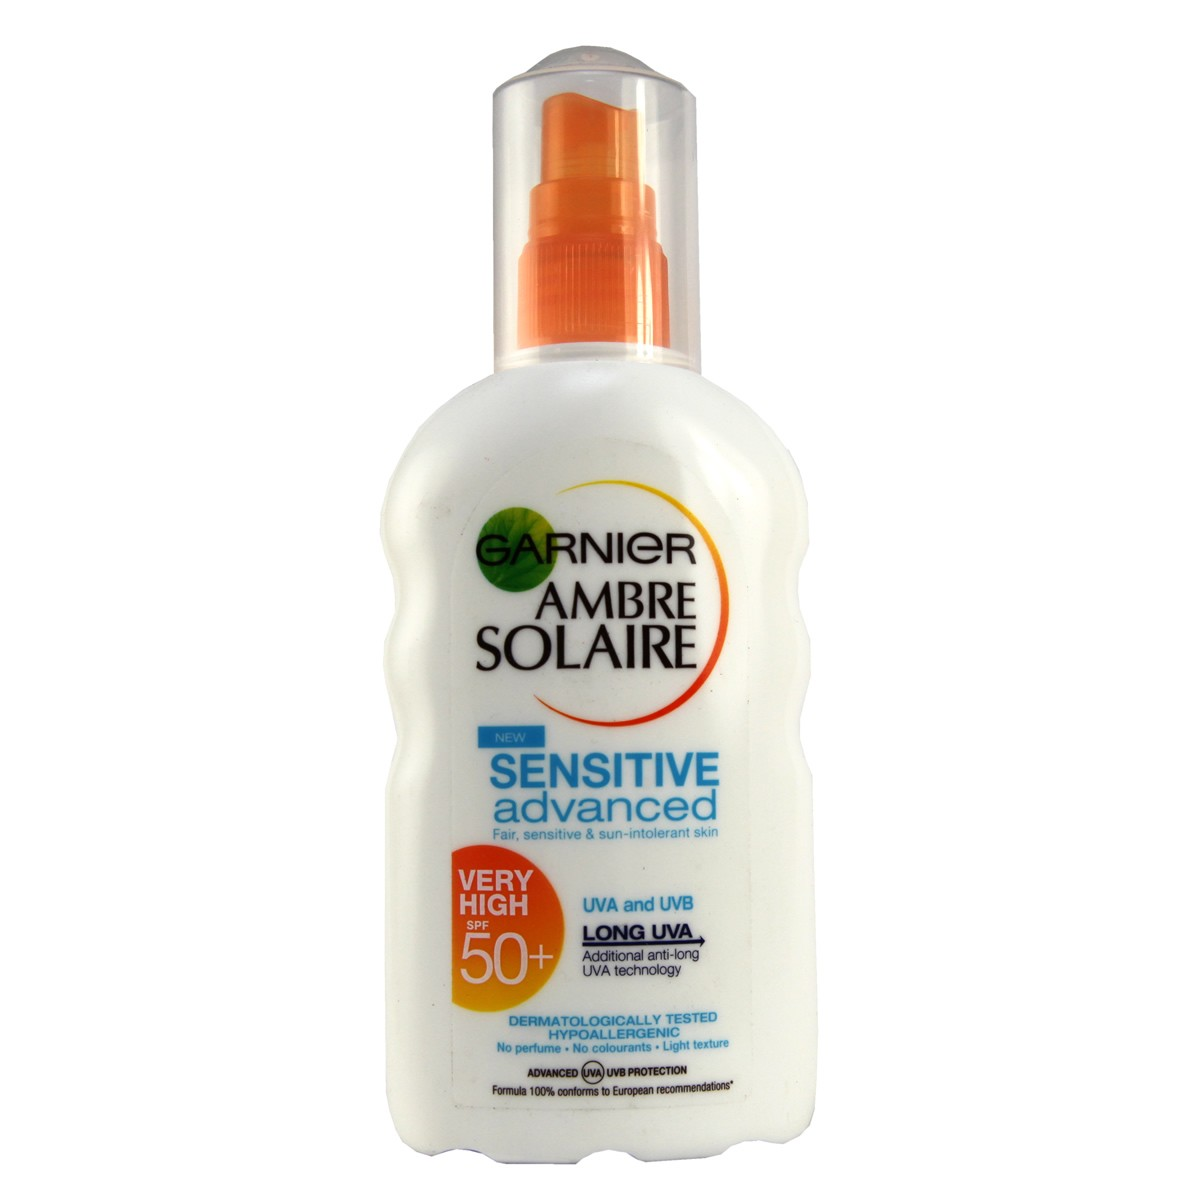 Garnier Ambre Solaire Sensitive Advanced Very High Protection Spray SPF50+